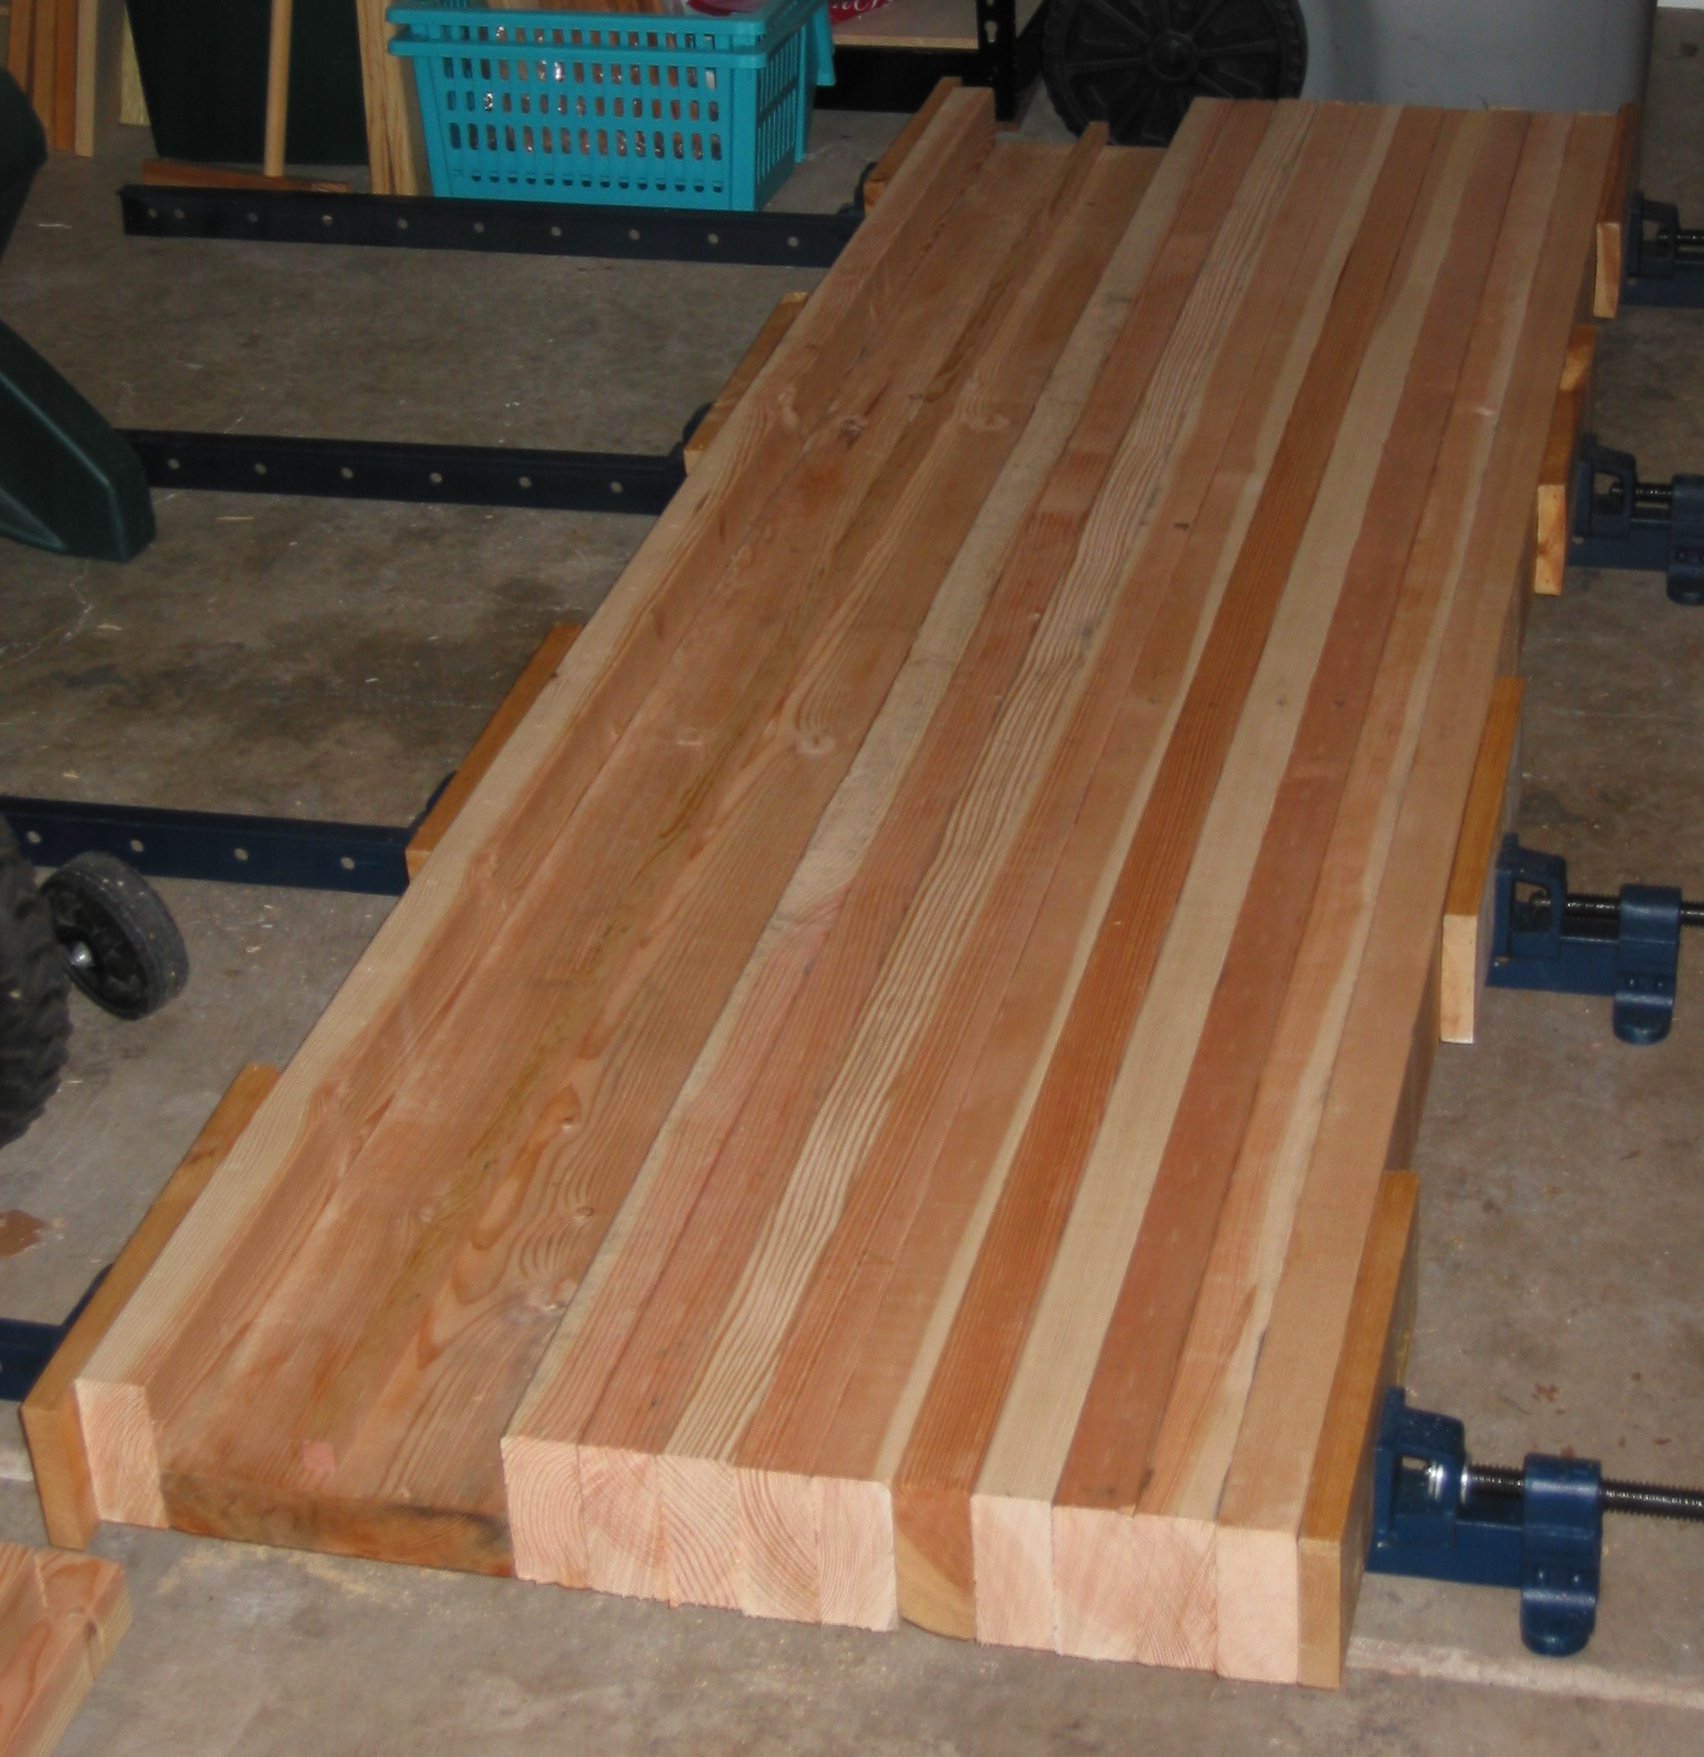 Woodworking 2x4 woodworking bench PDF Free Download